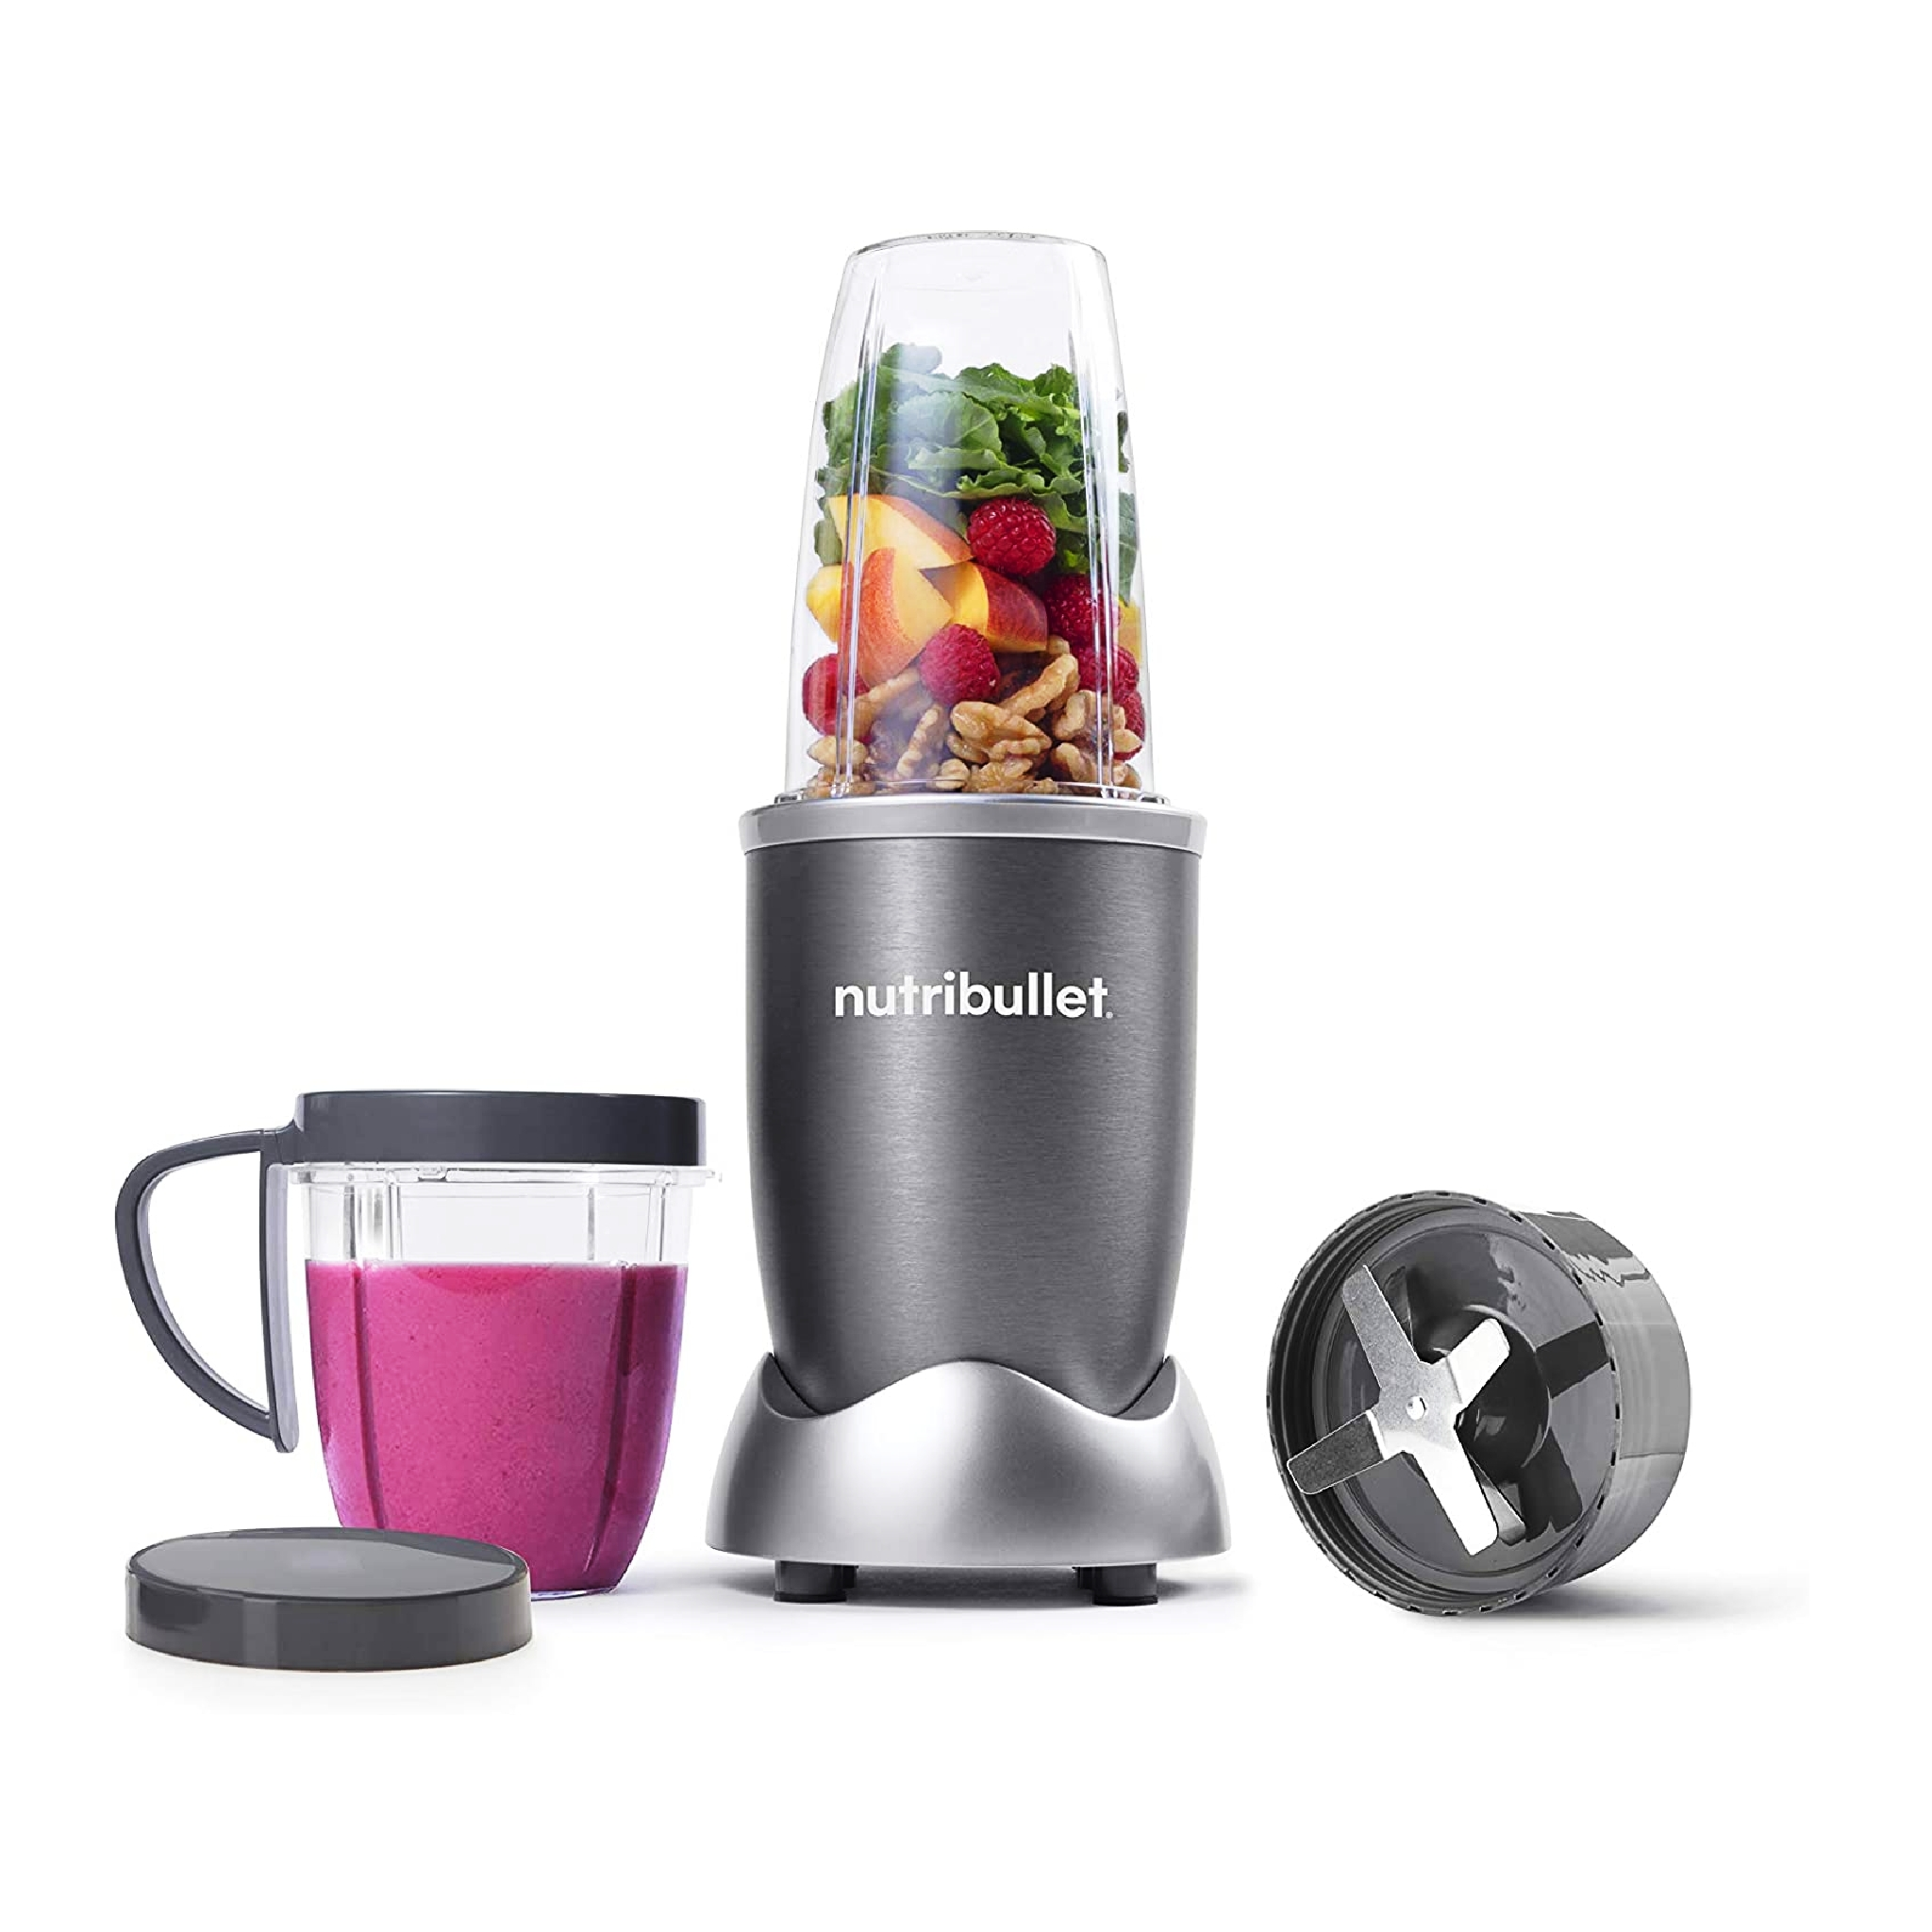 Nutribullet Blender - a very cheap juicer